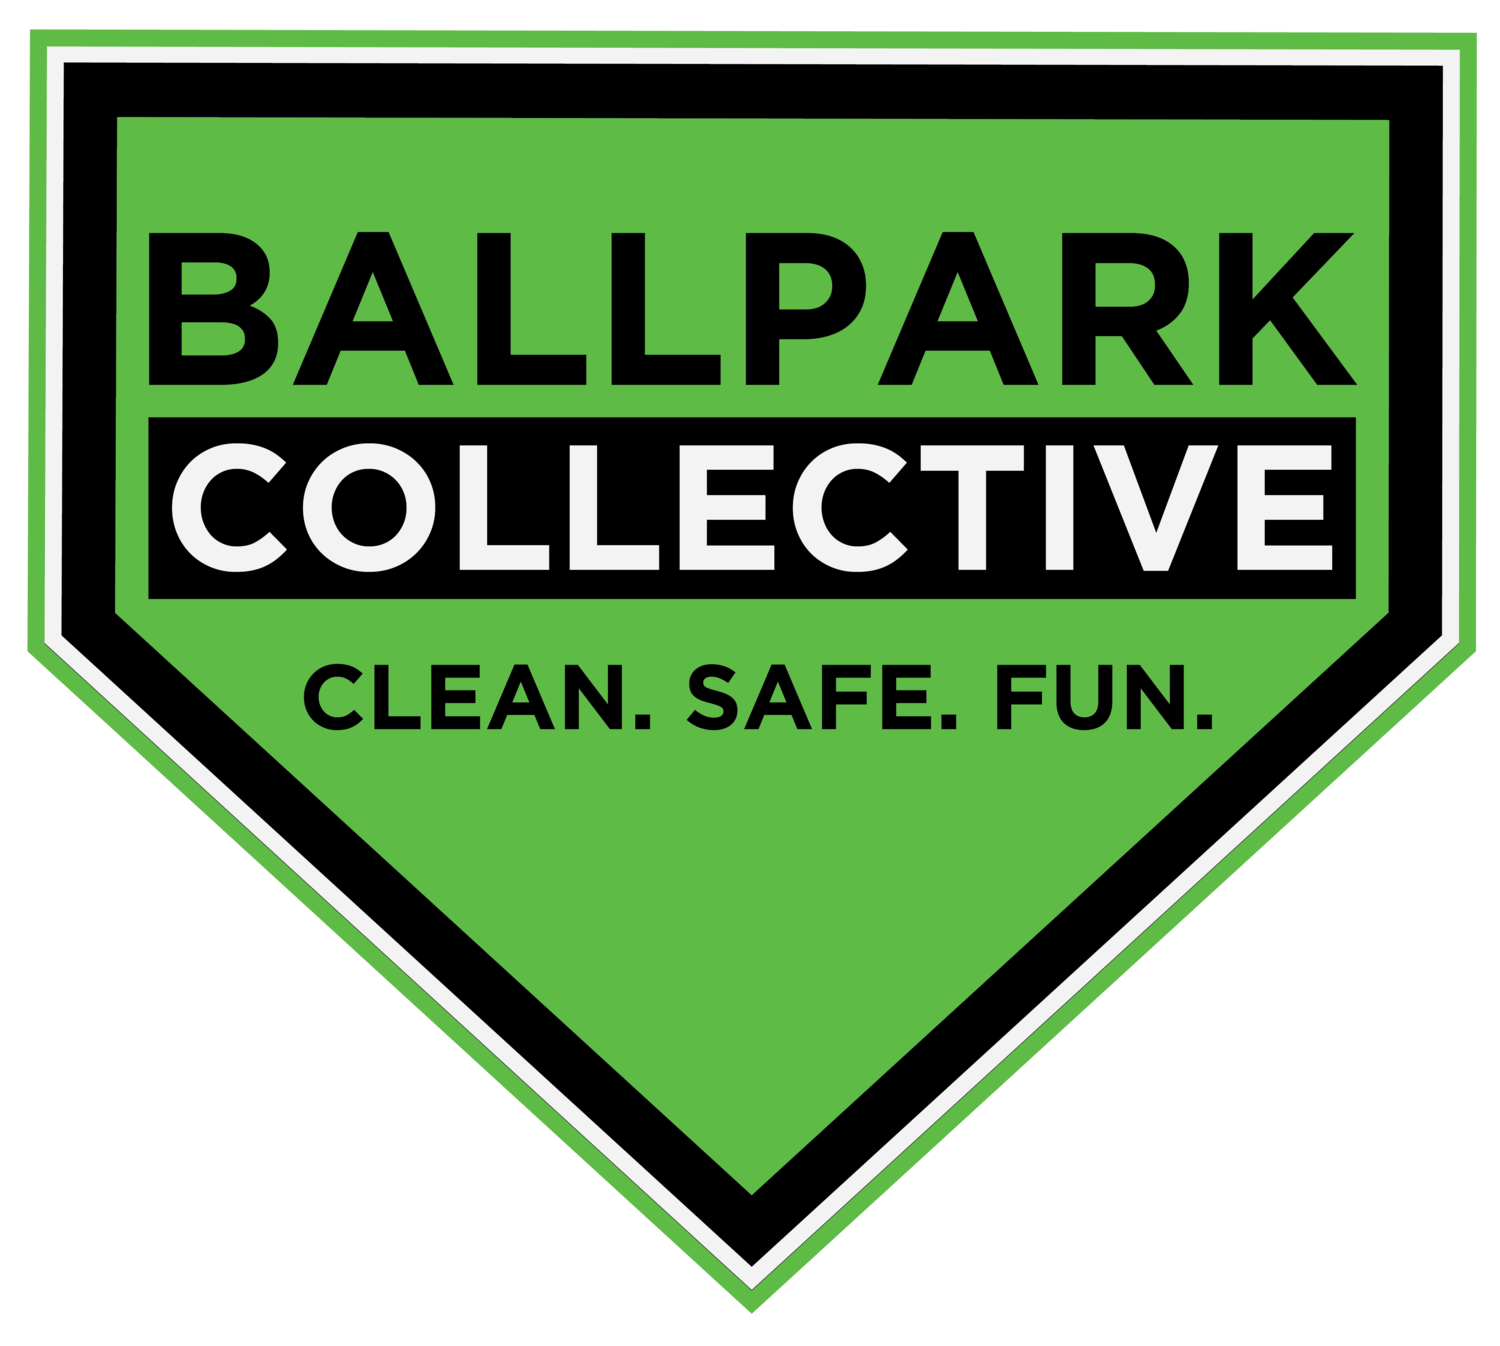 Ballpark Collective